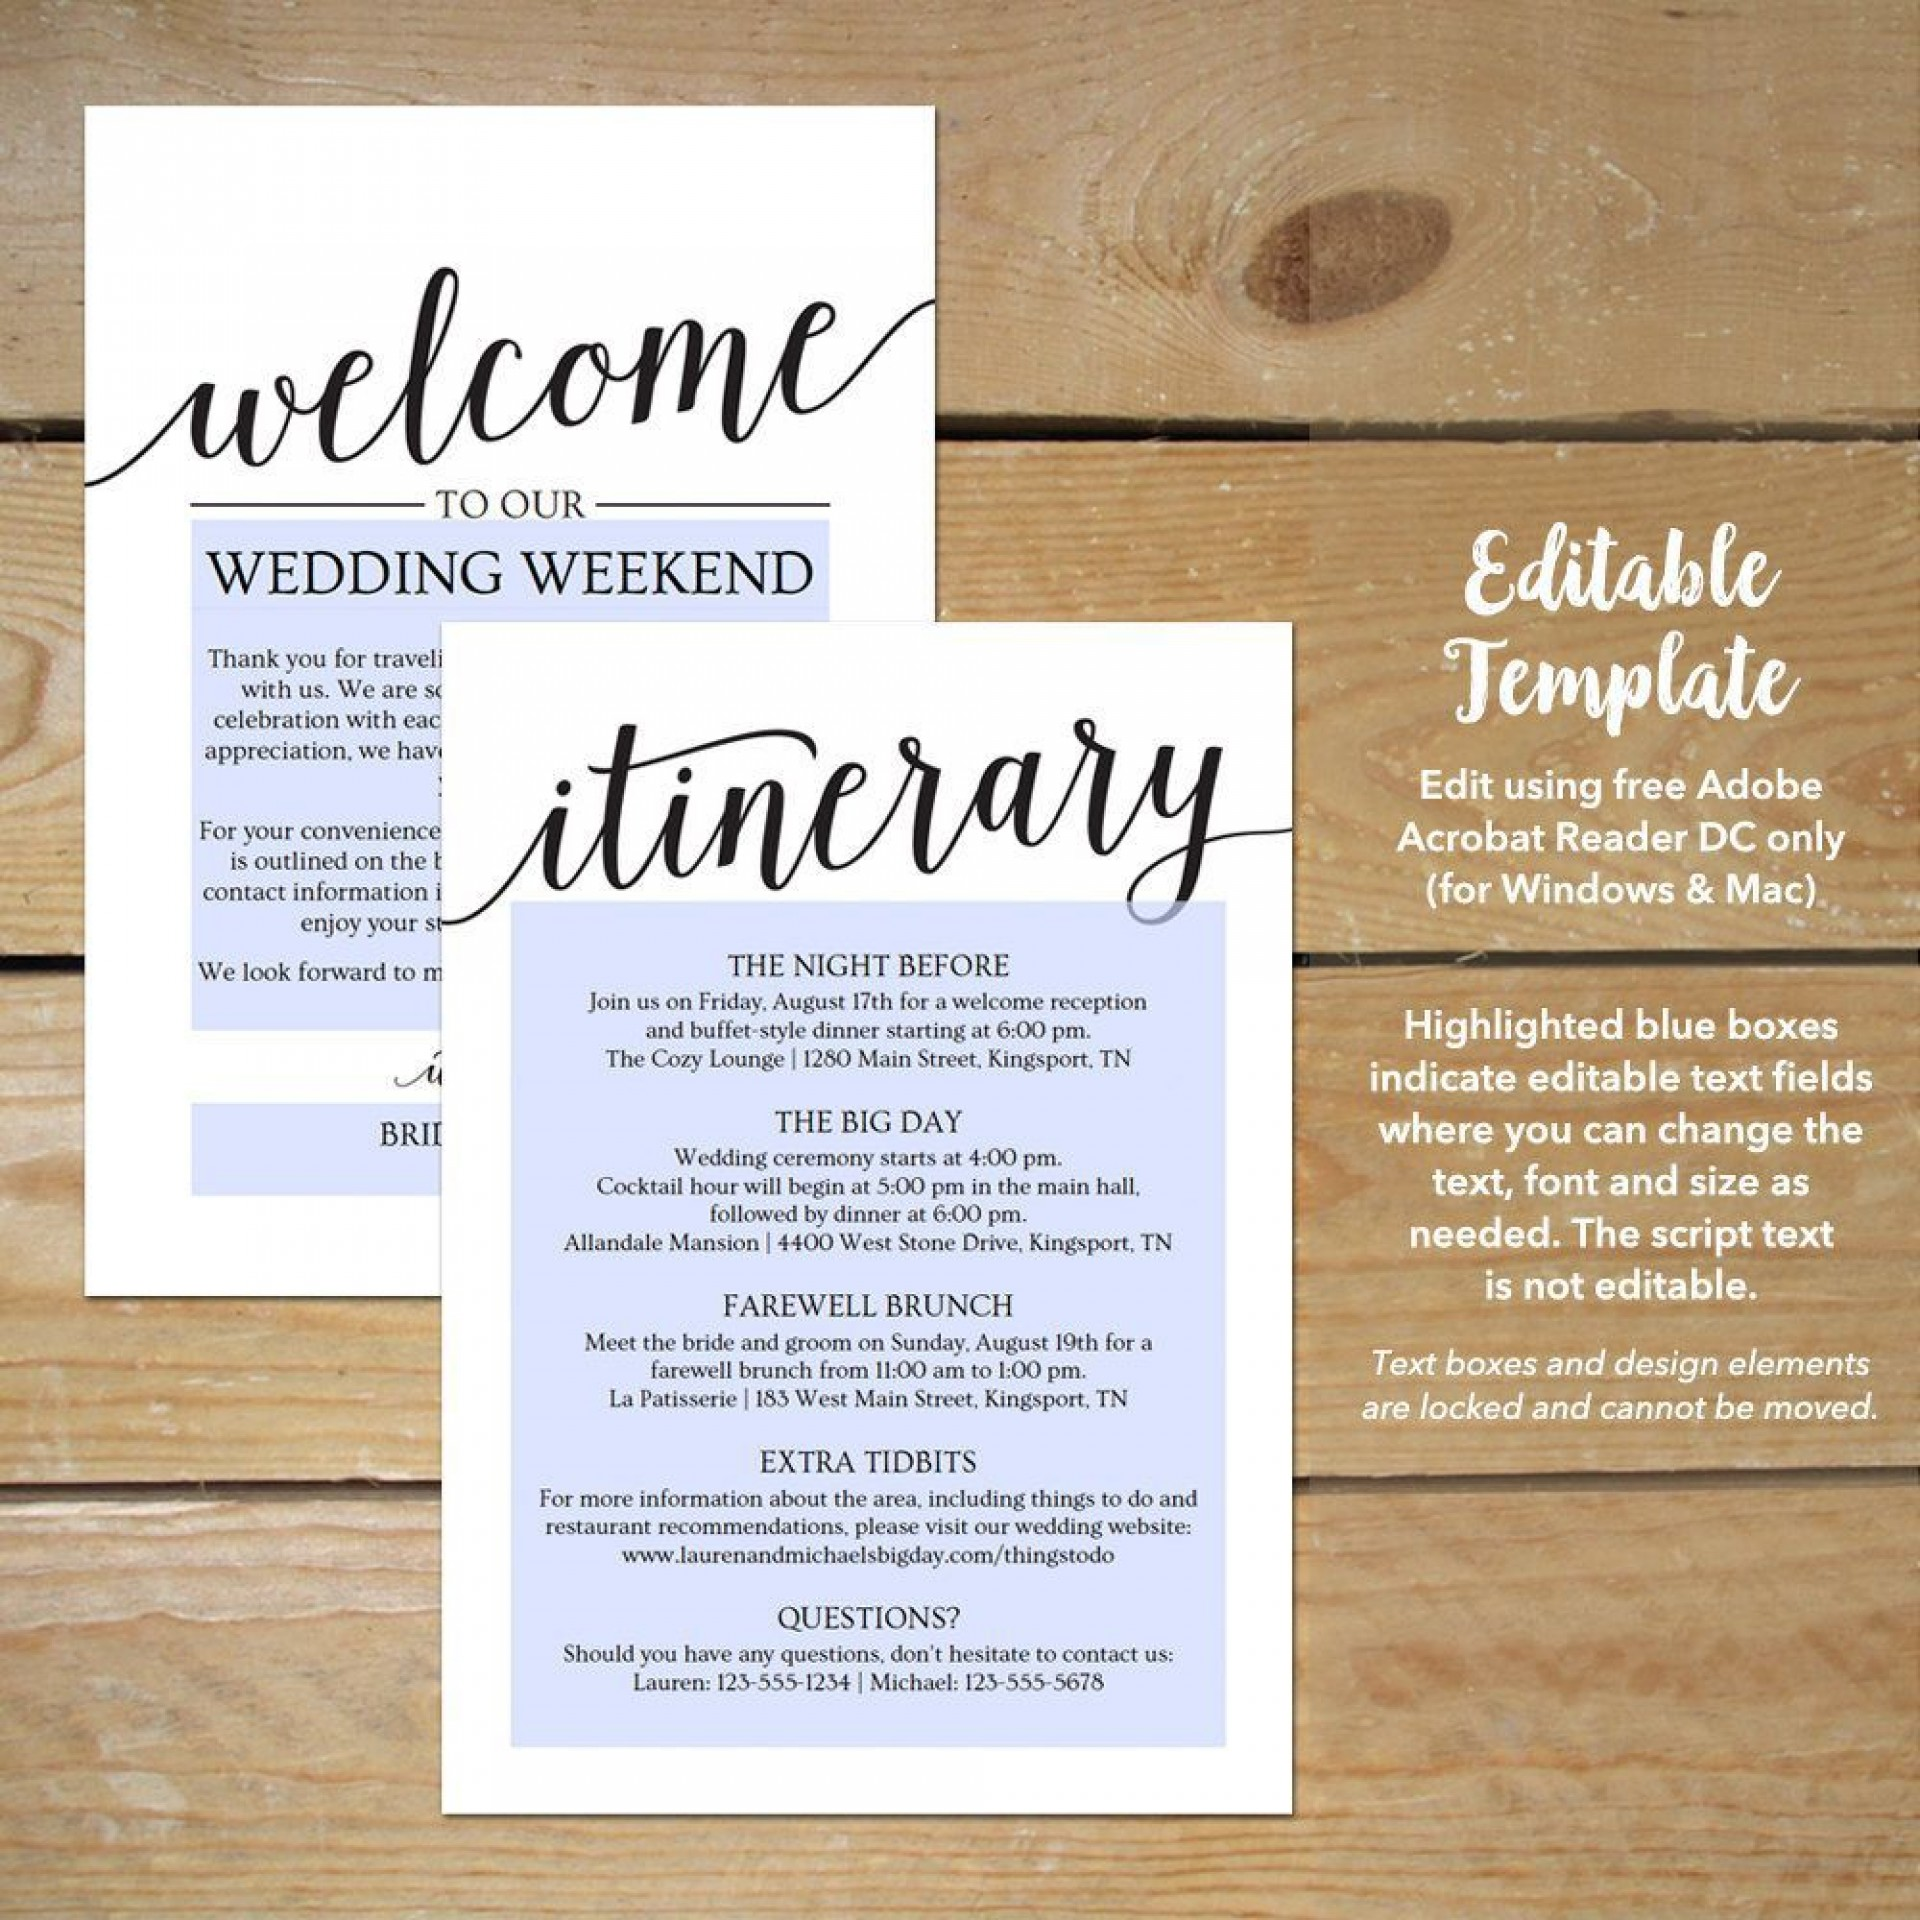 005 Wondrou Cruise Wedding Welcome Letter Template High Def 1920